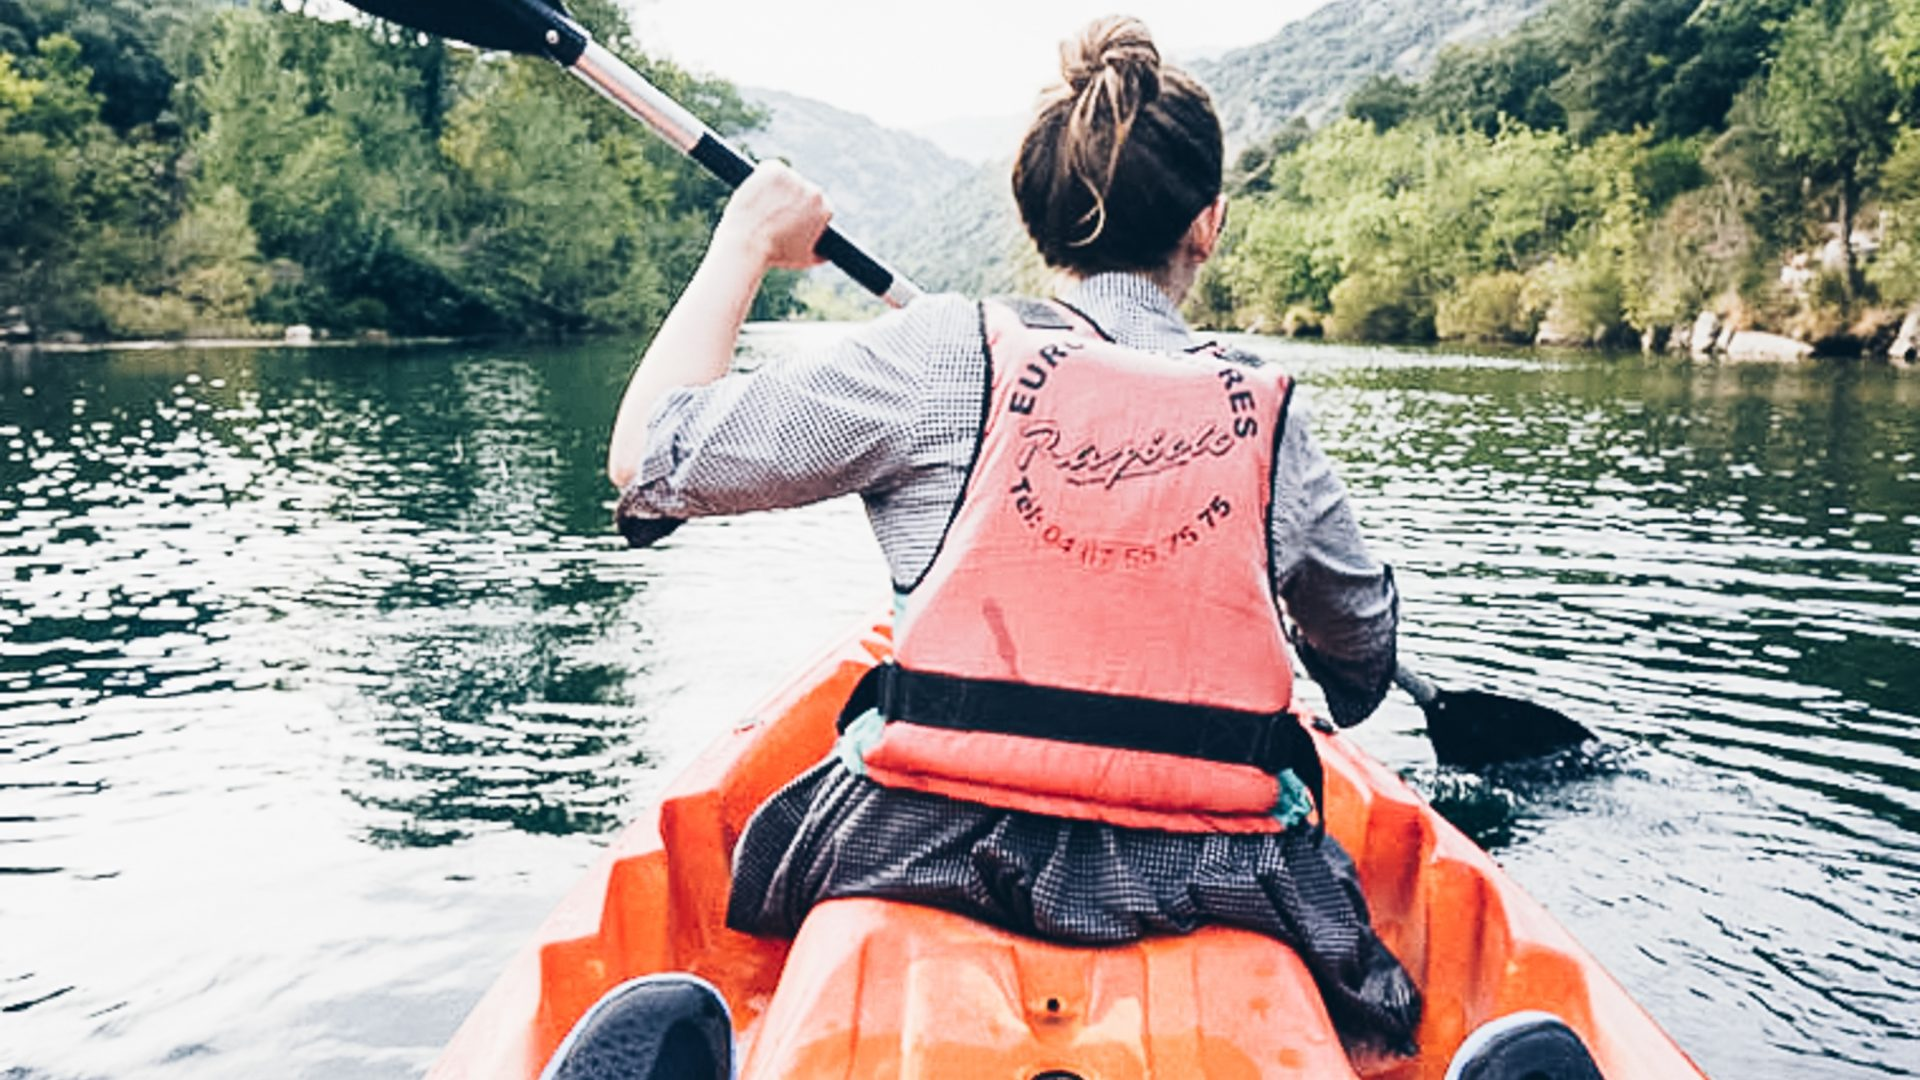 Rosie's back is visible as she kayaks down the river in Vallée de l'Hérault; kayaking in France